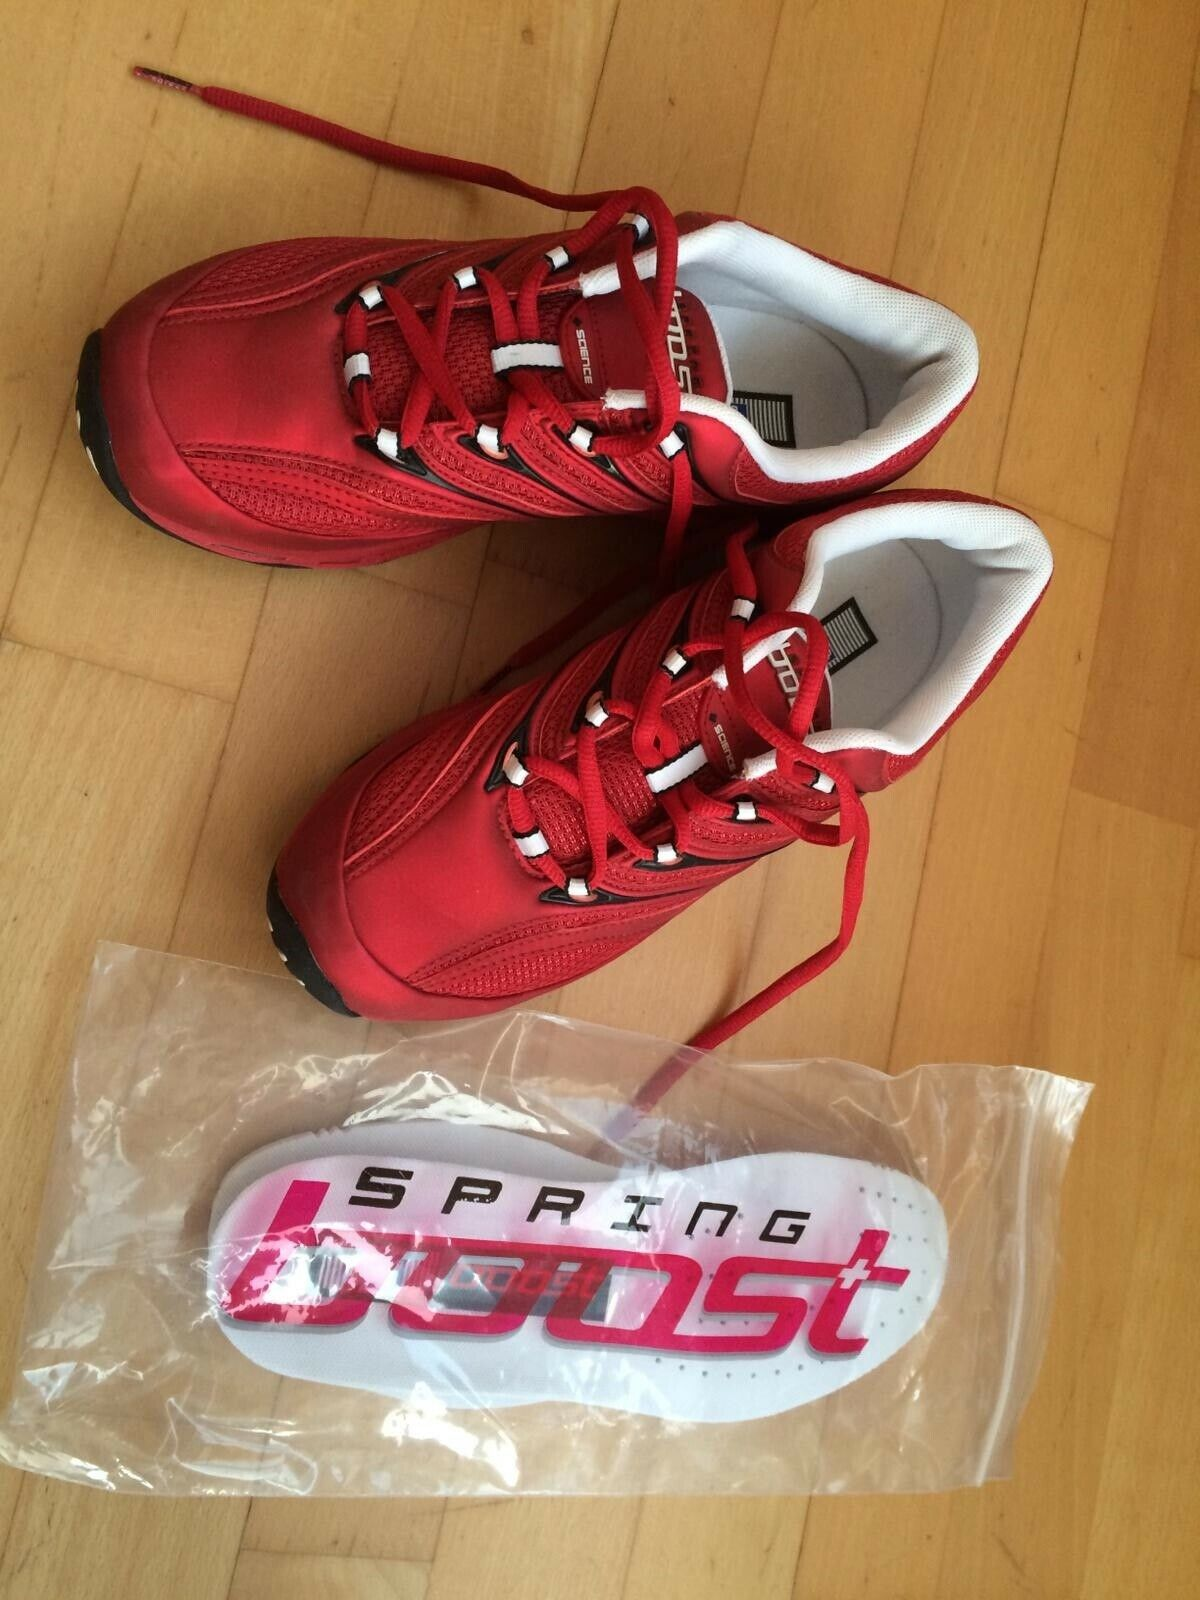 Rote Sportschuhe Fitness Turnschuhe Spring Boost Gr. 38